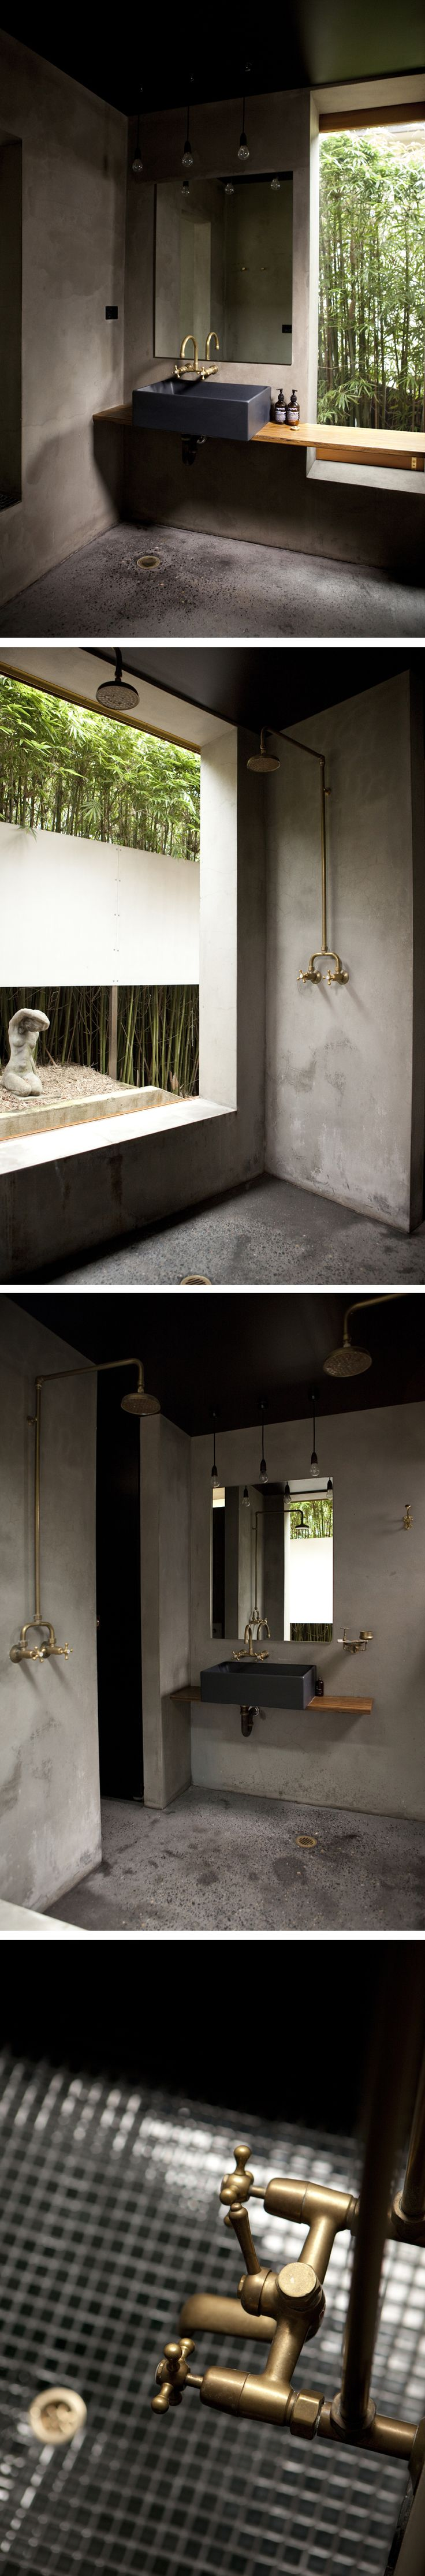 bathroom_concrete bath